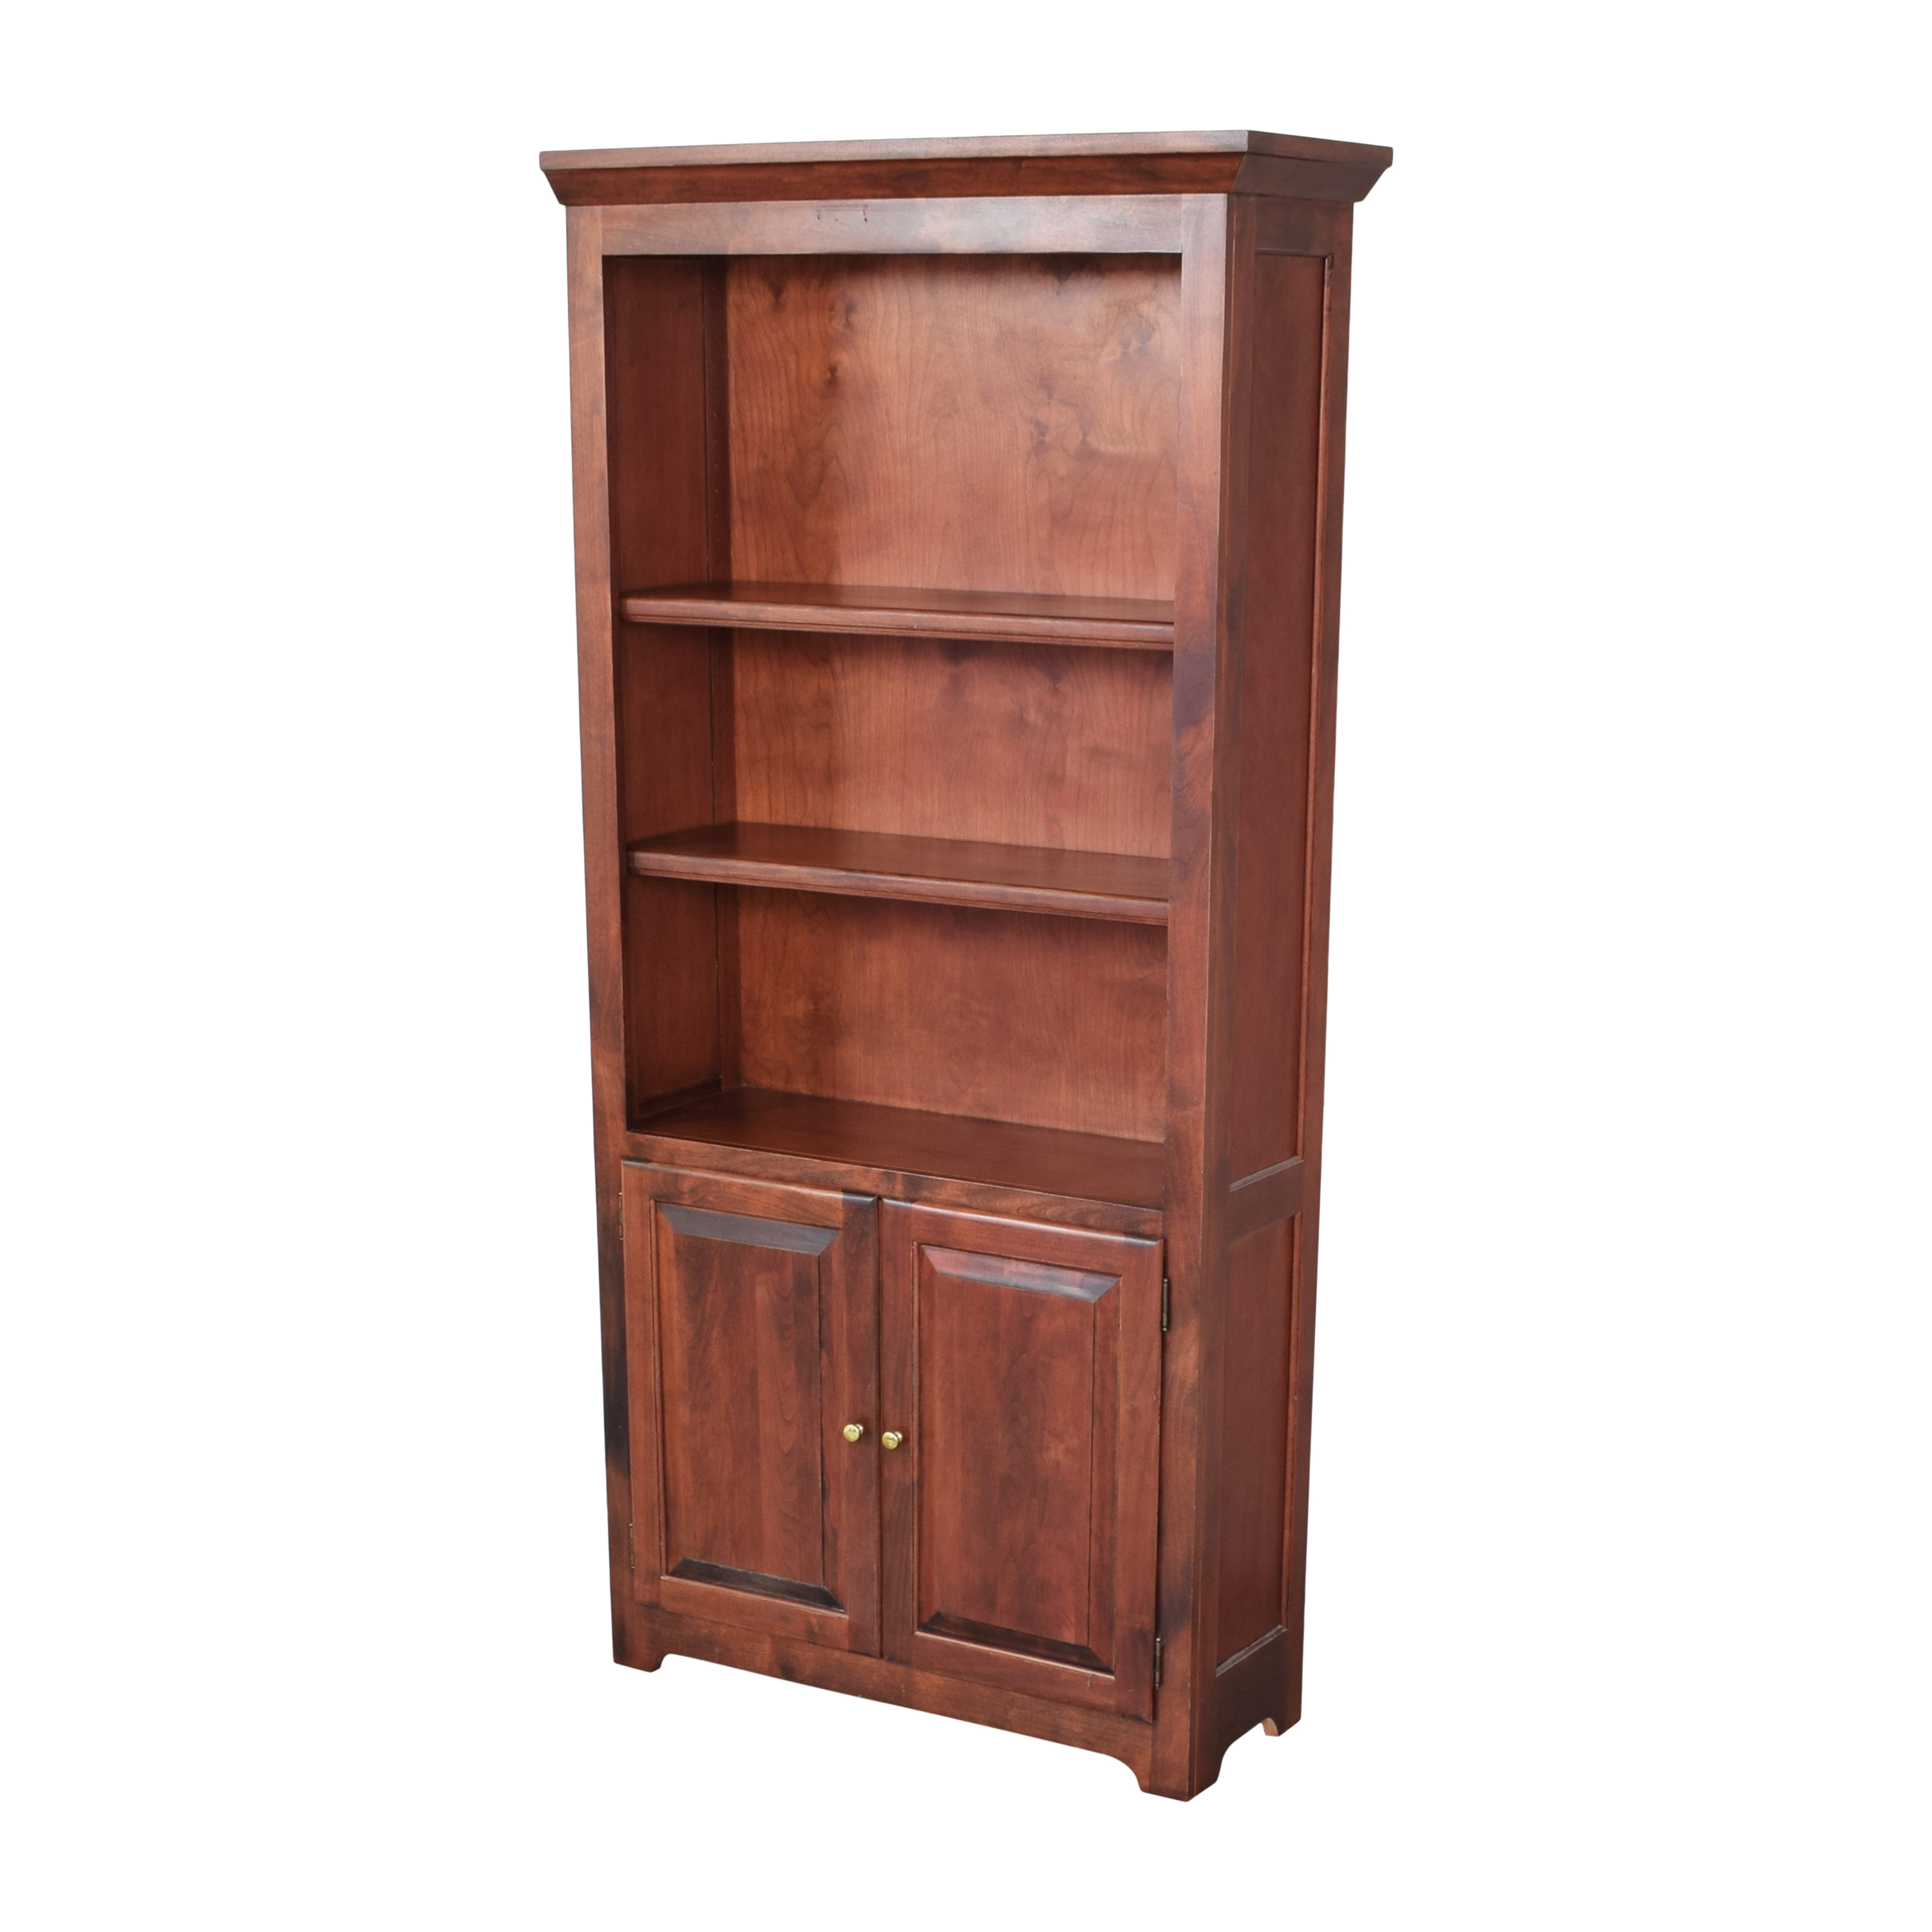 shop Mission Bookshelf with Cabinet  Bookcases & Shelving